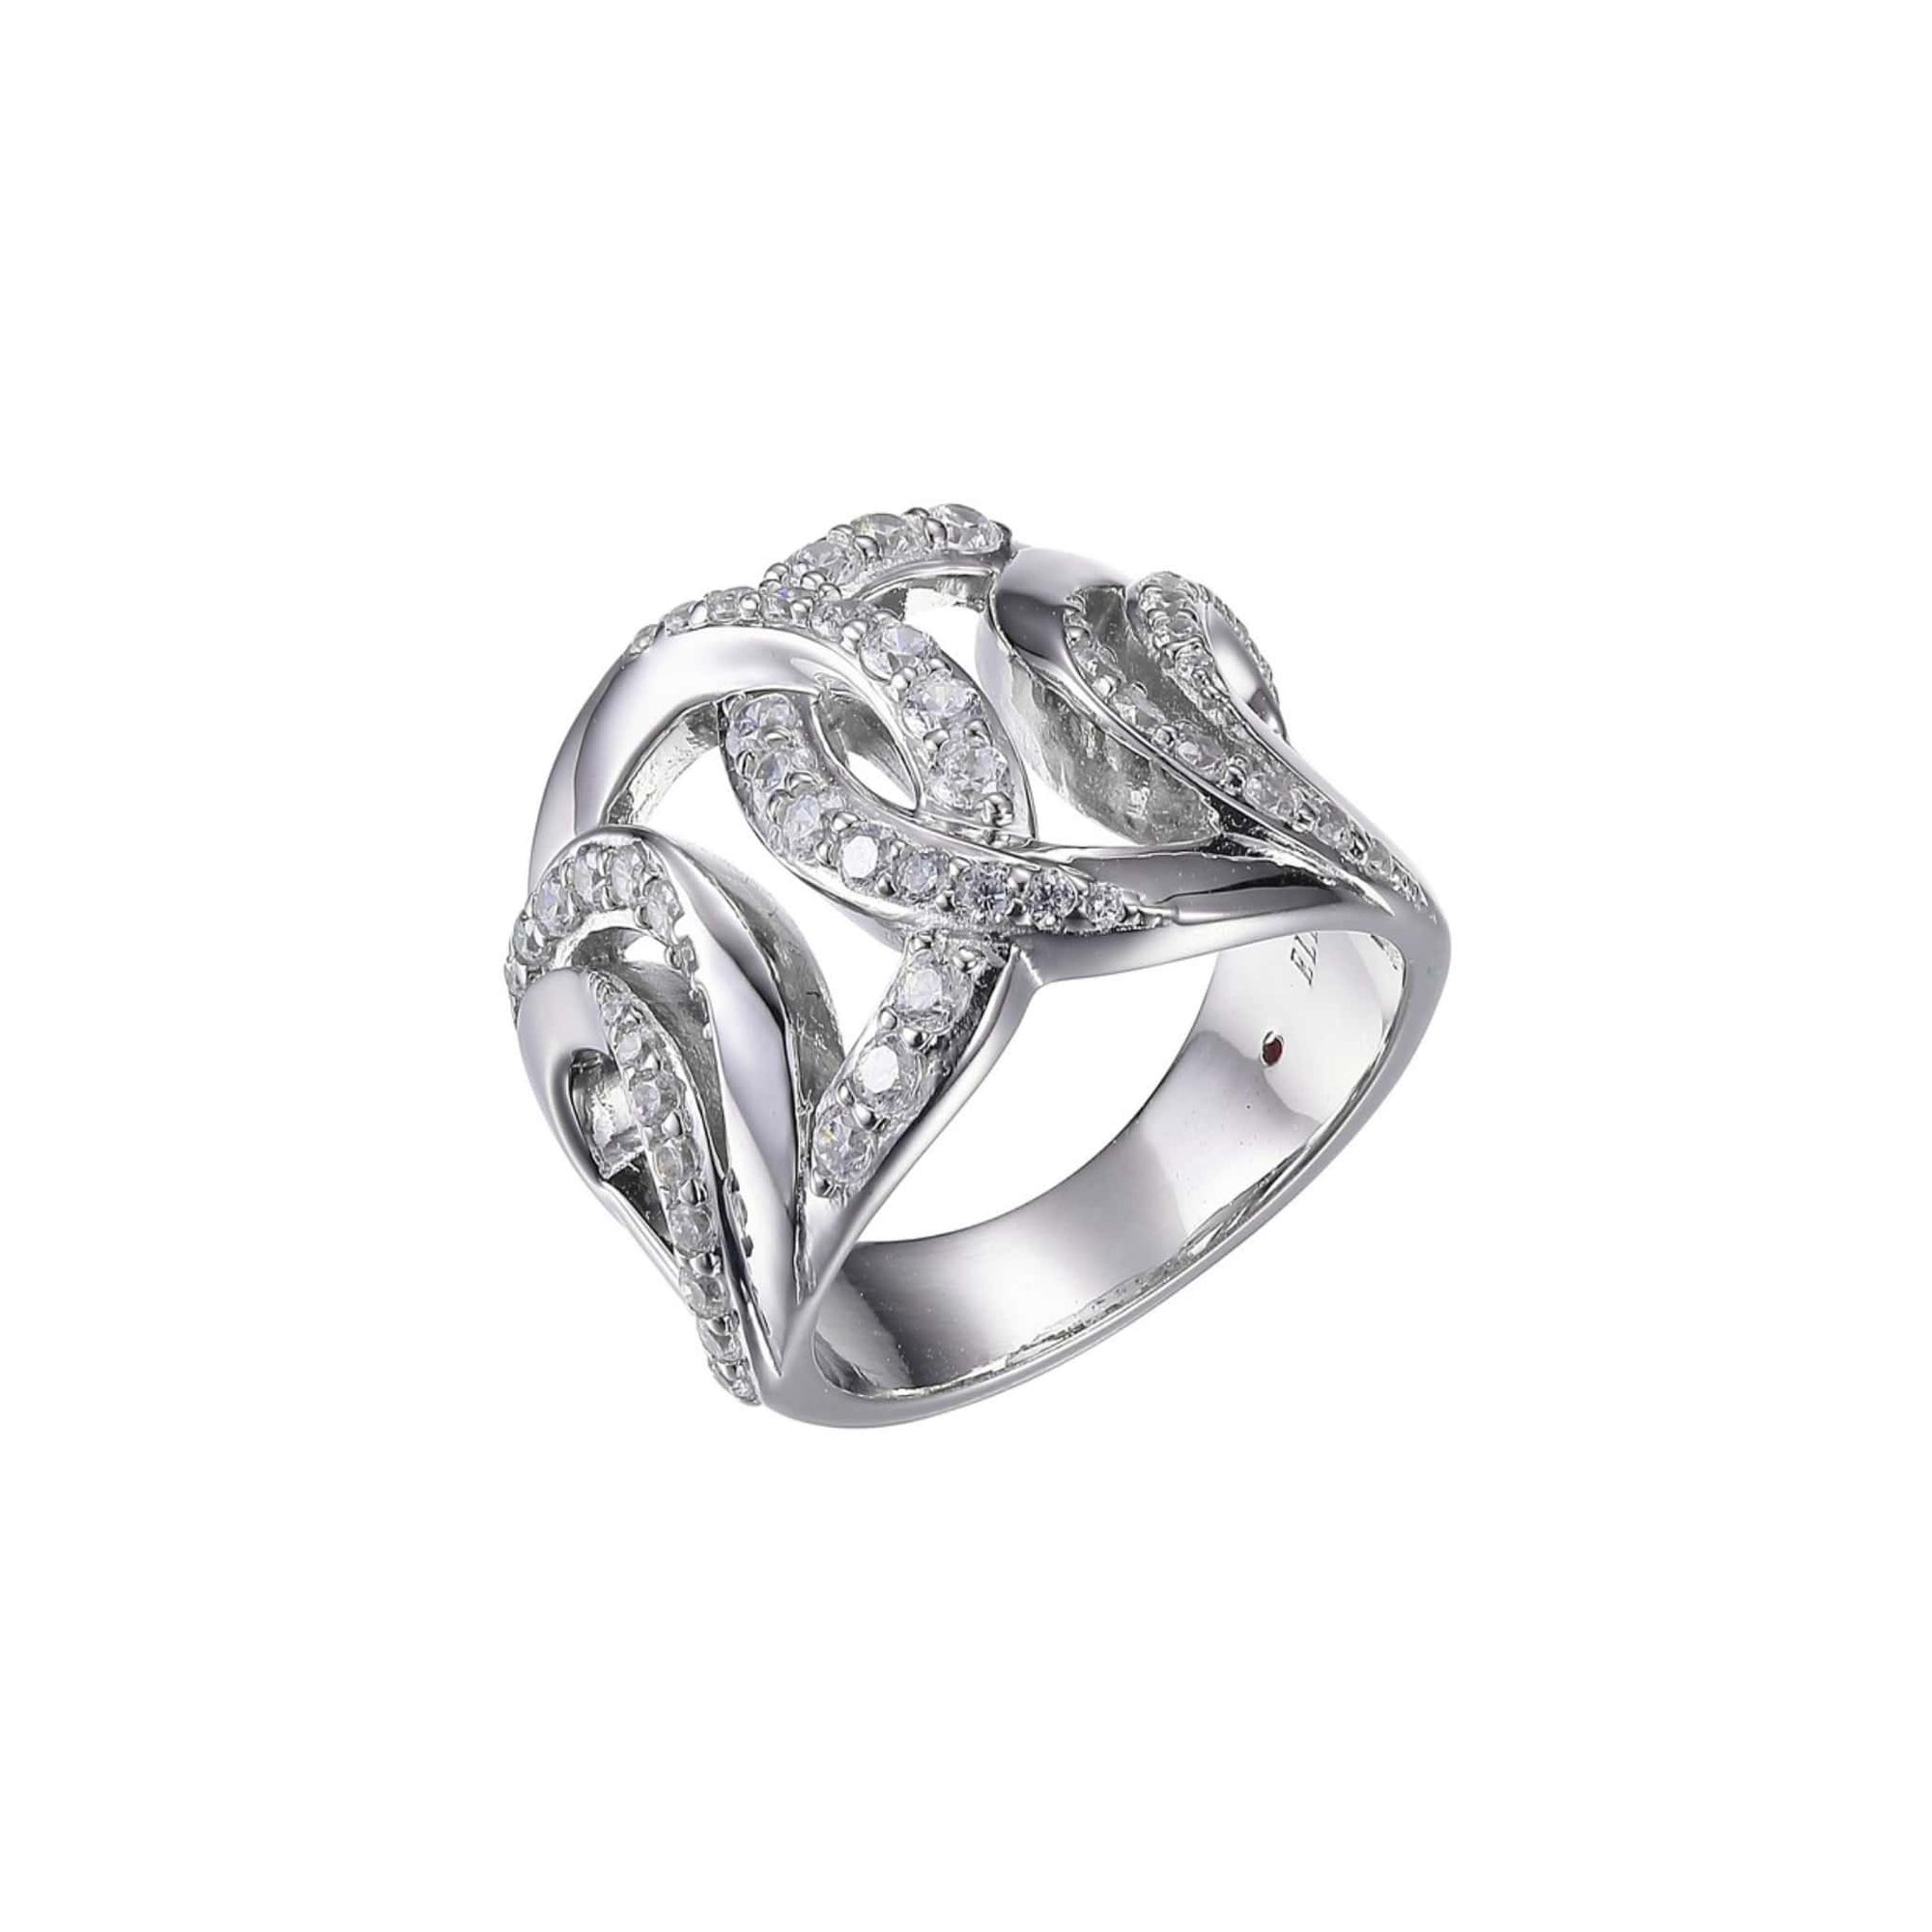 ELLE Majestic Silver Ring at Arman's Jewellers